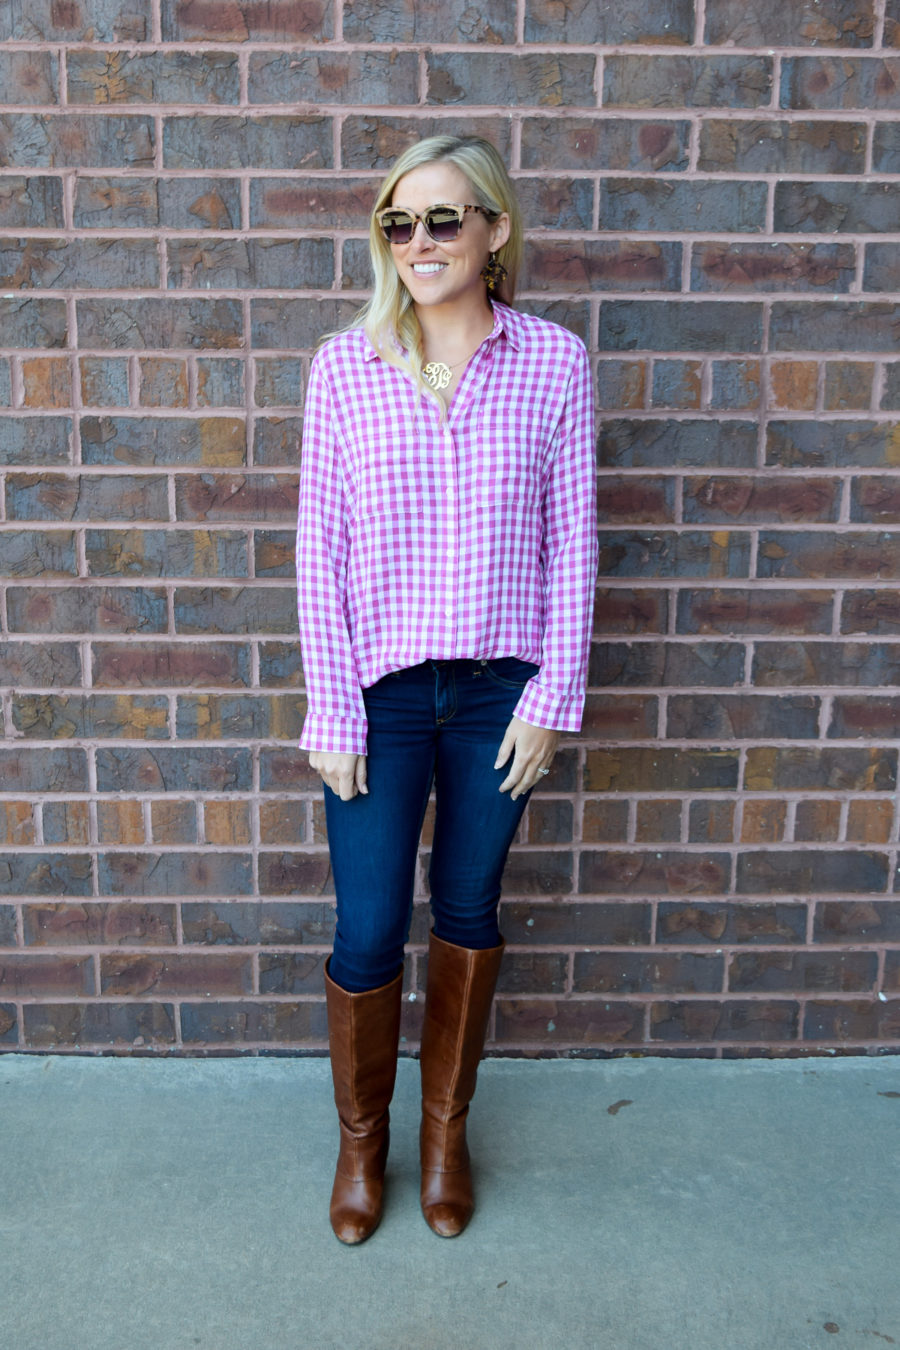 PINK GINGHAM TOP // JEANS // SUNGLASSES, UNDER $15 // old steve madden boots  // top runs large, size down one size – I'm in XS